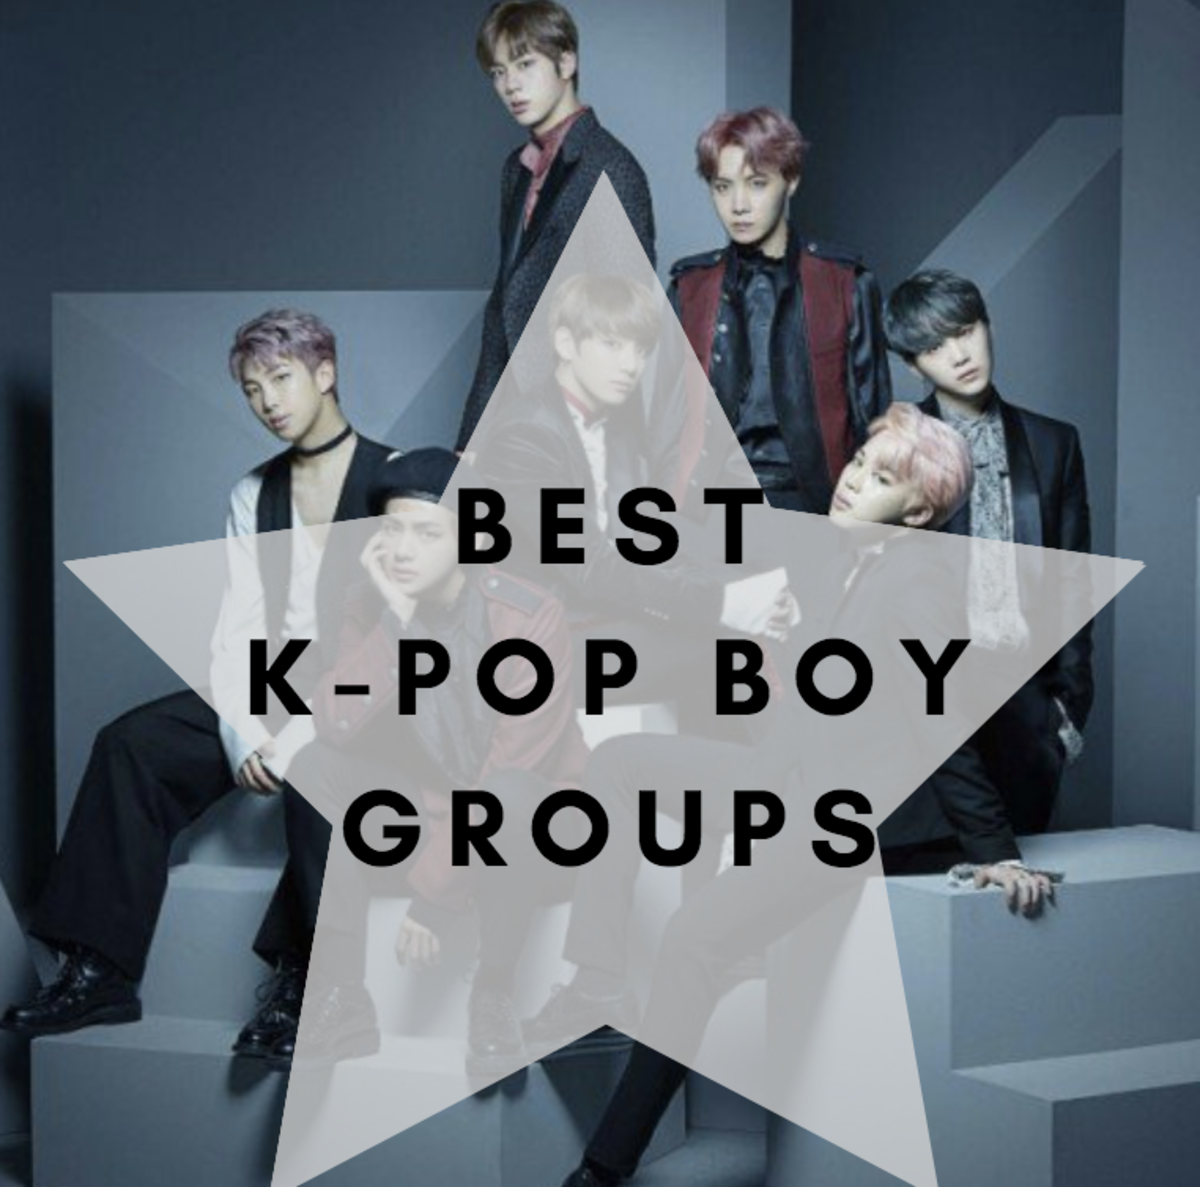 Top 10 Best K-Pop Boy Groups of 2017 and 2018